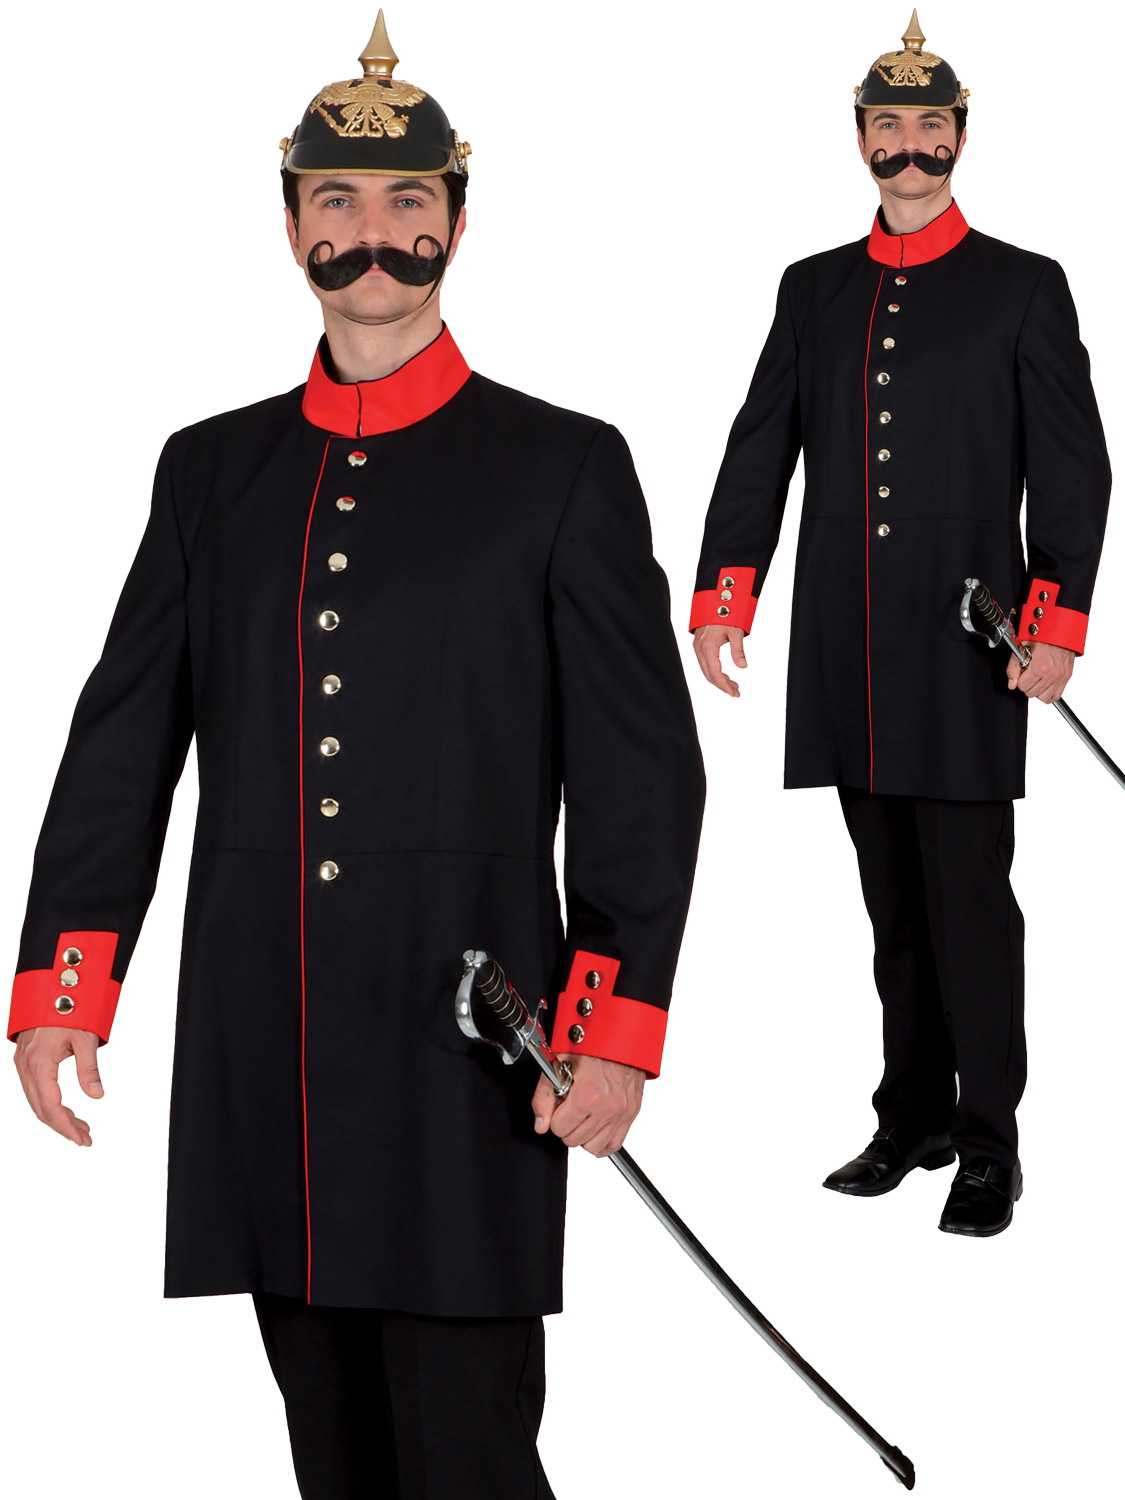 Mens german soldier costume adults world war fancy dress prussian transform yourself into a german soldier with this world war i themed costume perfect for historic events solutioingenieria Image collections